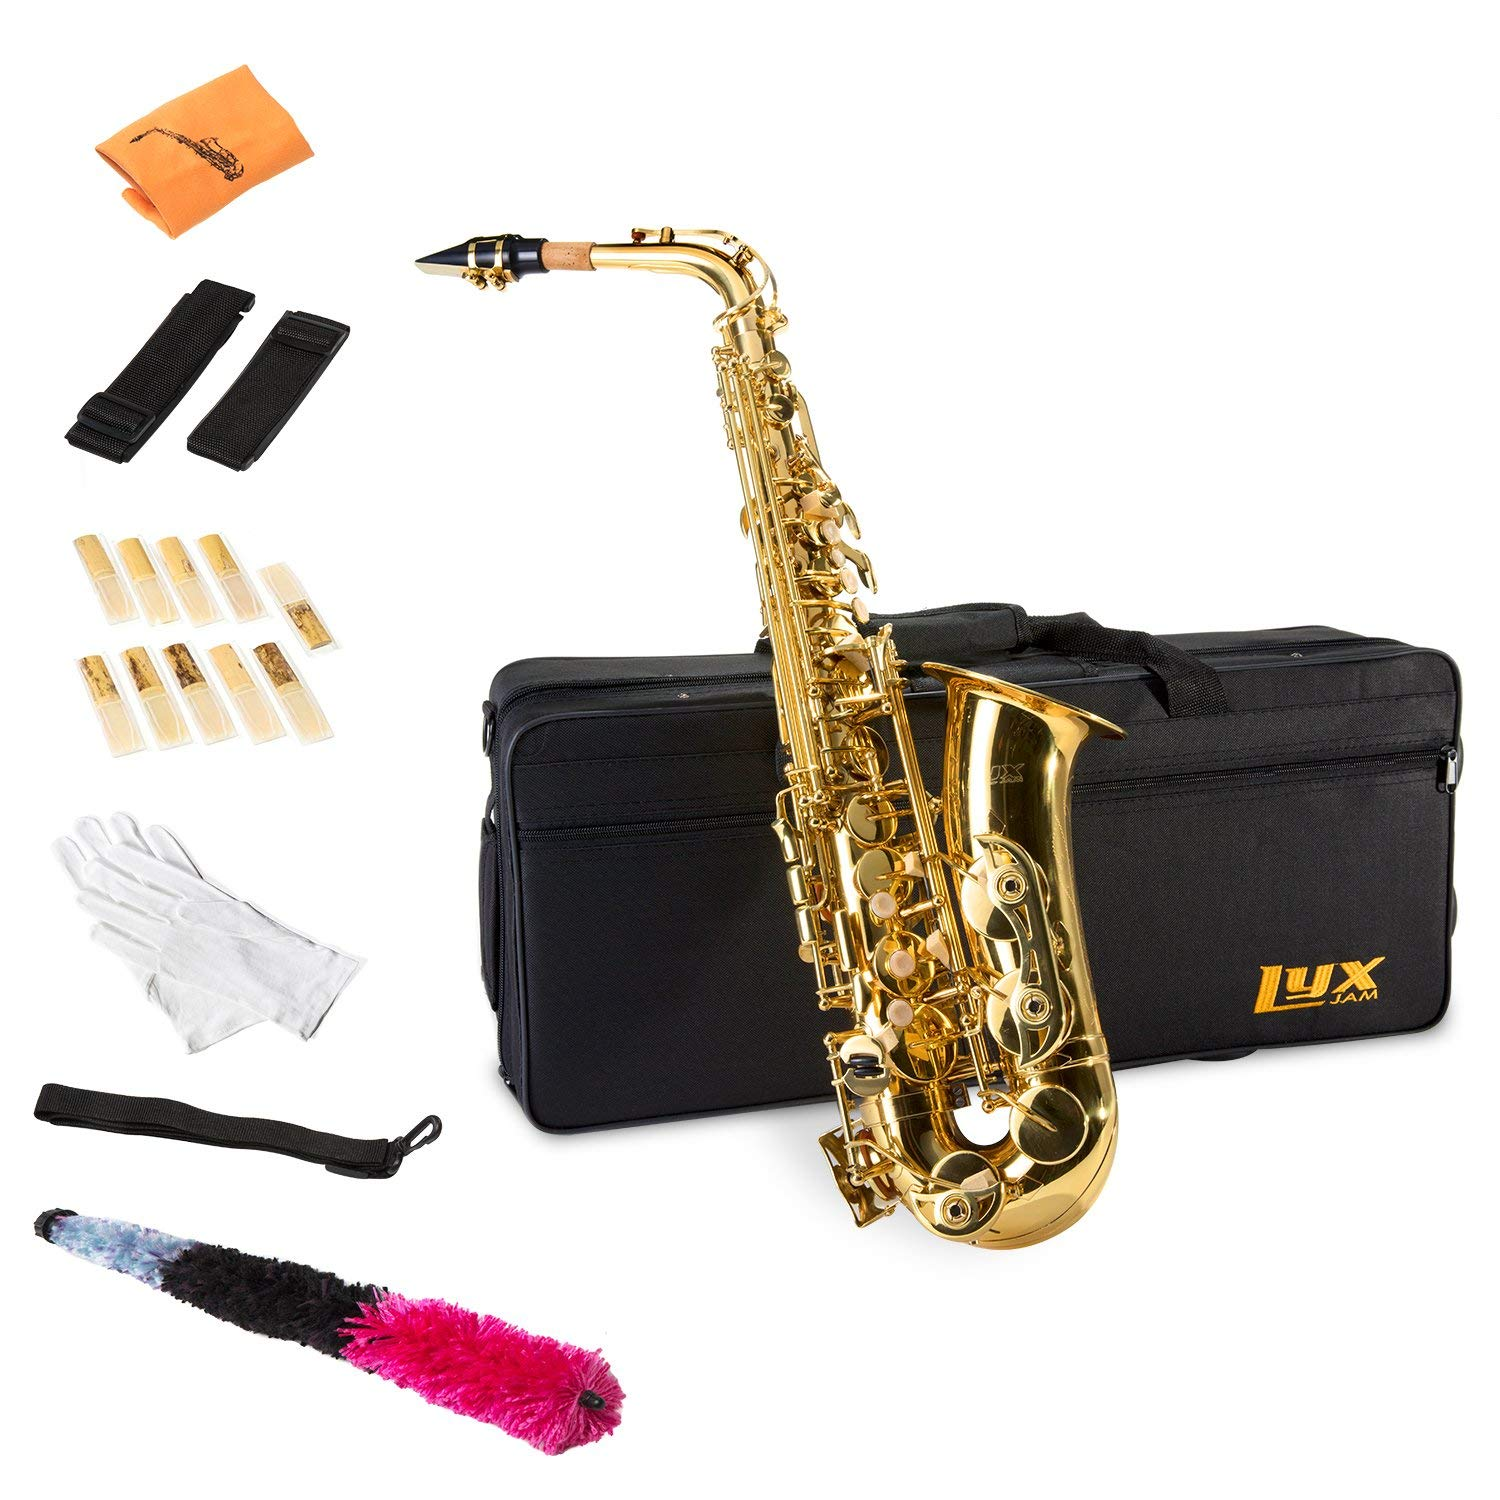 LyxJam Alto Saxophone - E Flat Brass Sax Beginners Kit, Mouthpiece, Neck Strap, Cleaning Cloth Rod, Gloves, Cork Grease, Hard Carrying Case w/ Removable Straps, Maintenance Guide - 10 BONUS Reeds (C by LyxJam